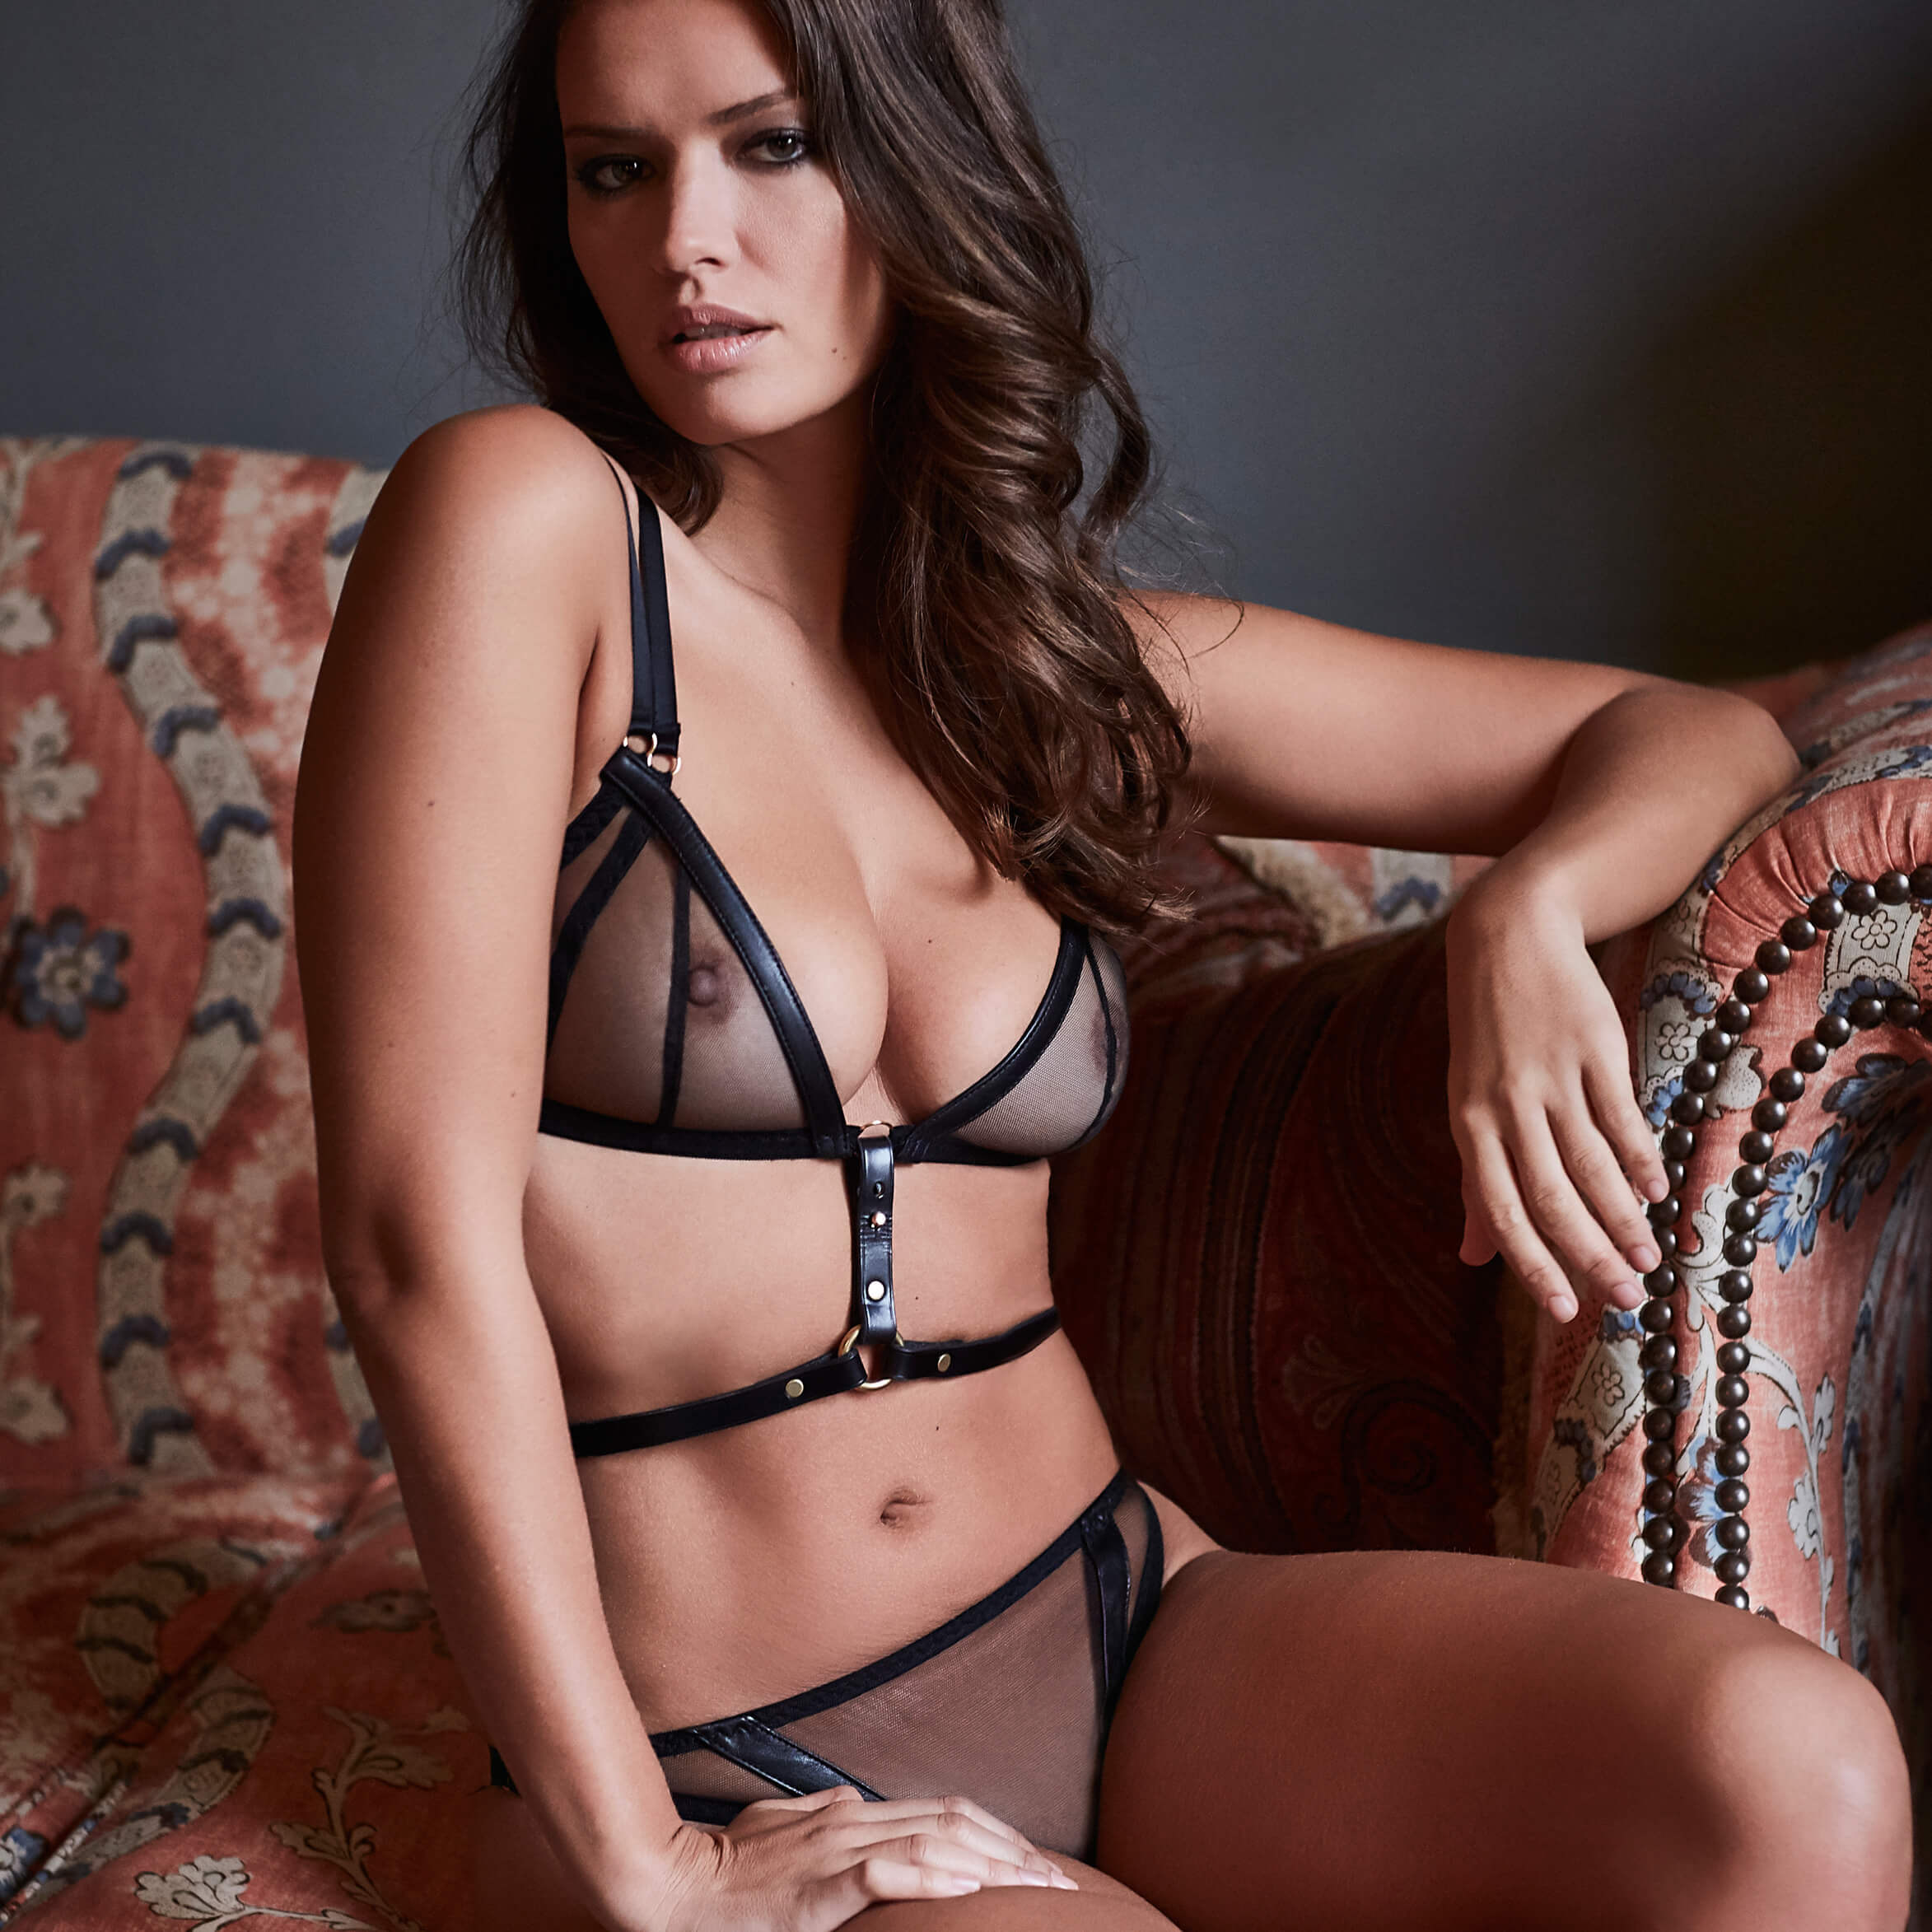 Leather Lingerie Lookbook